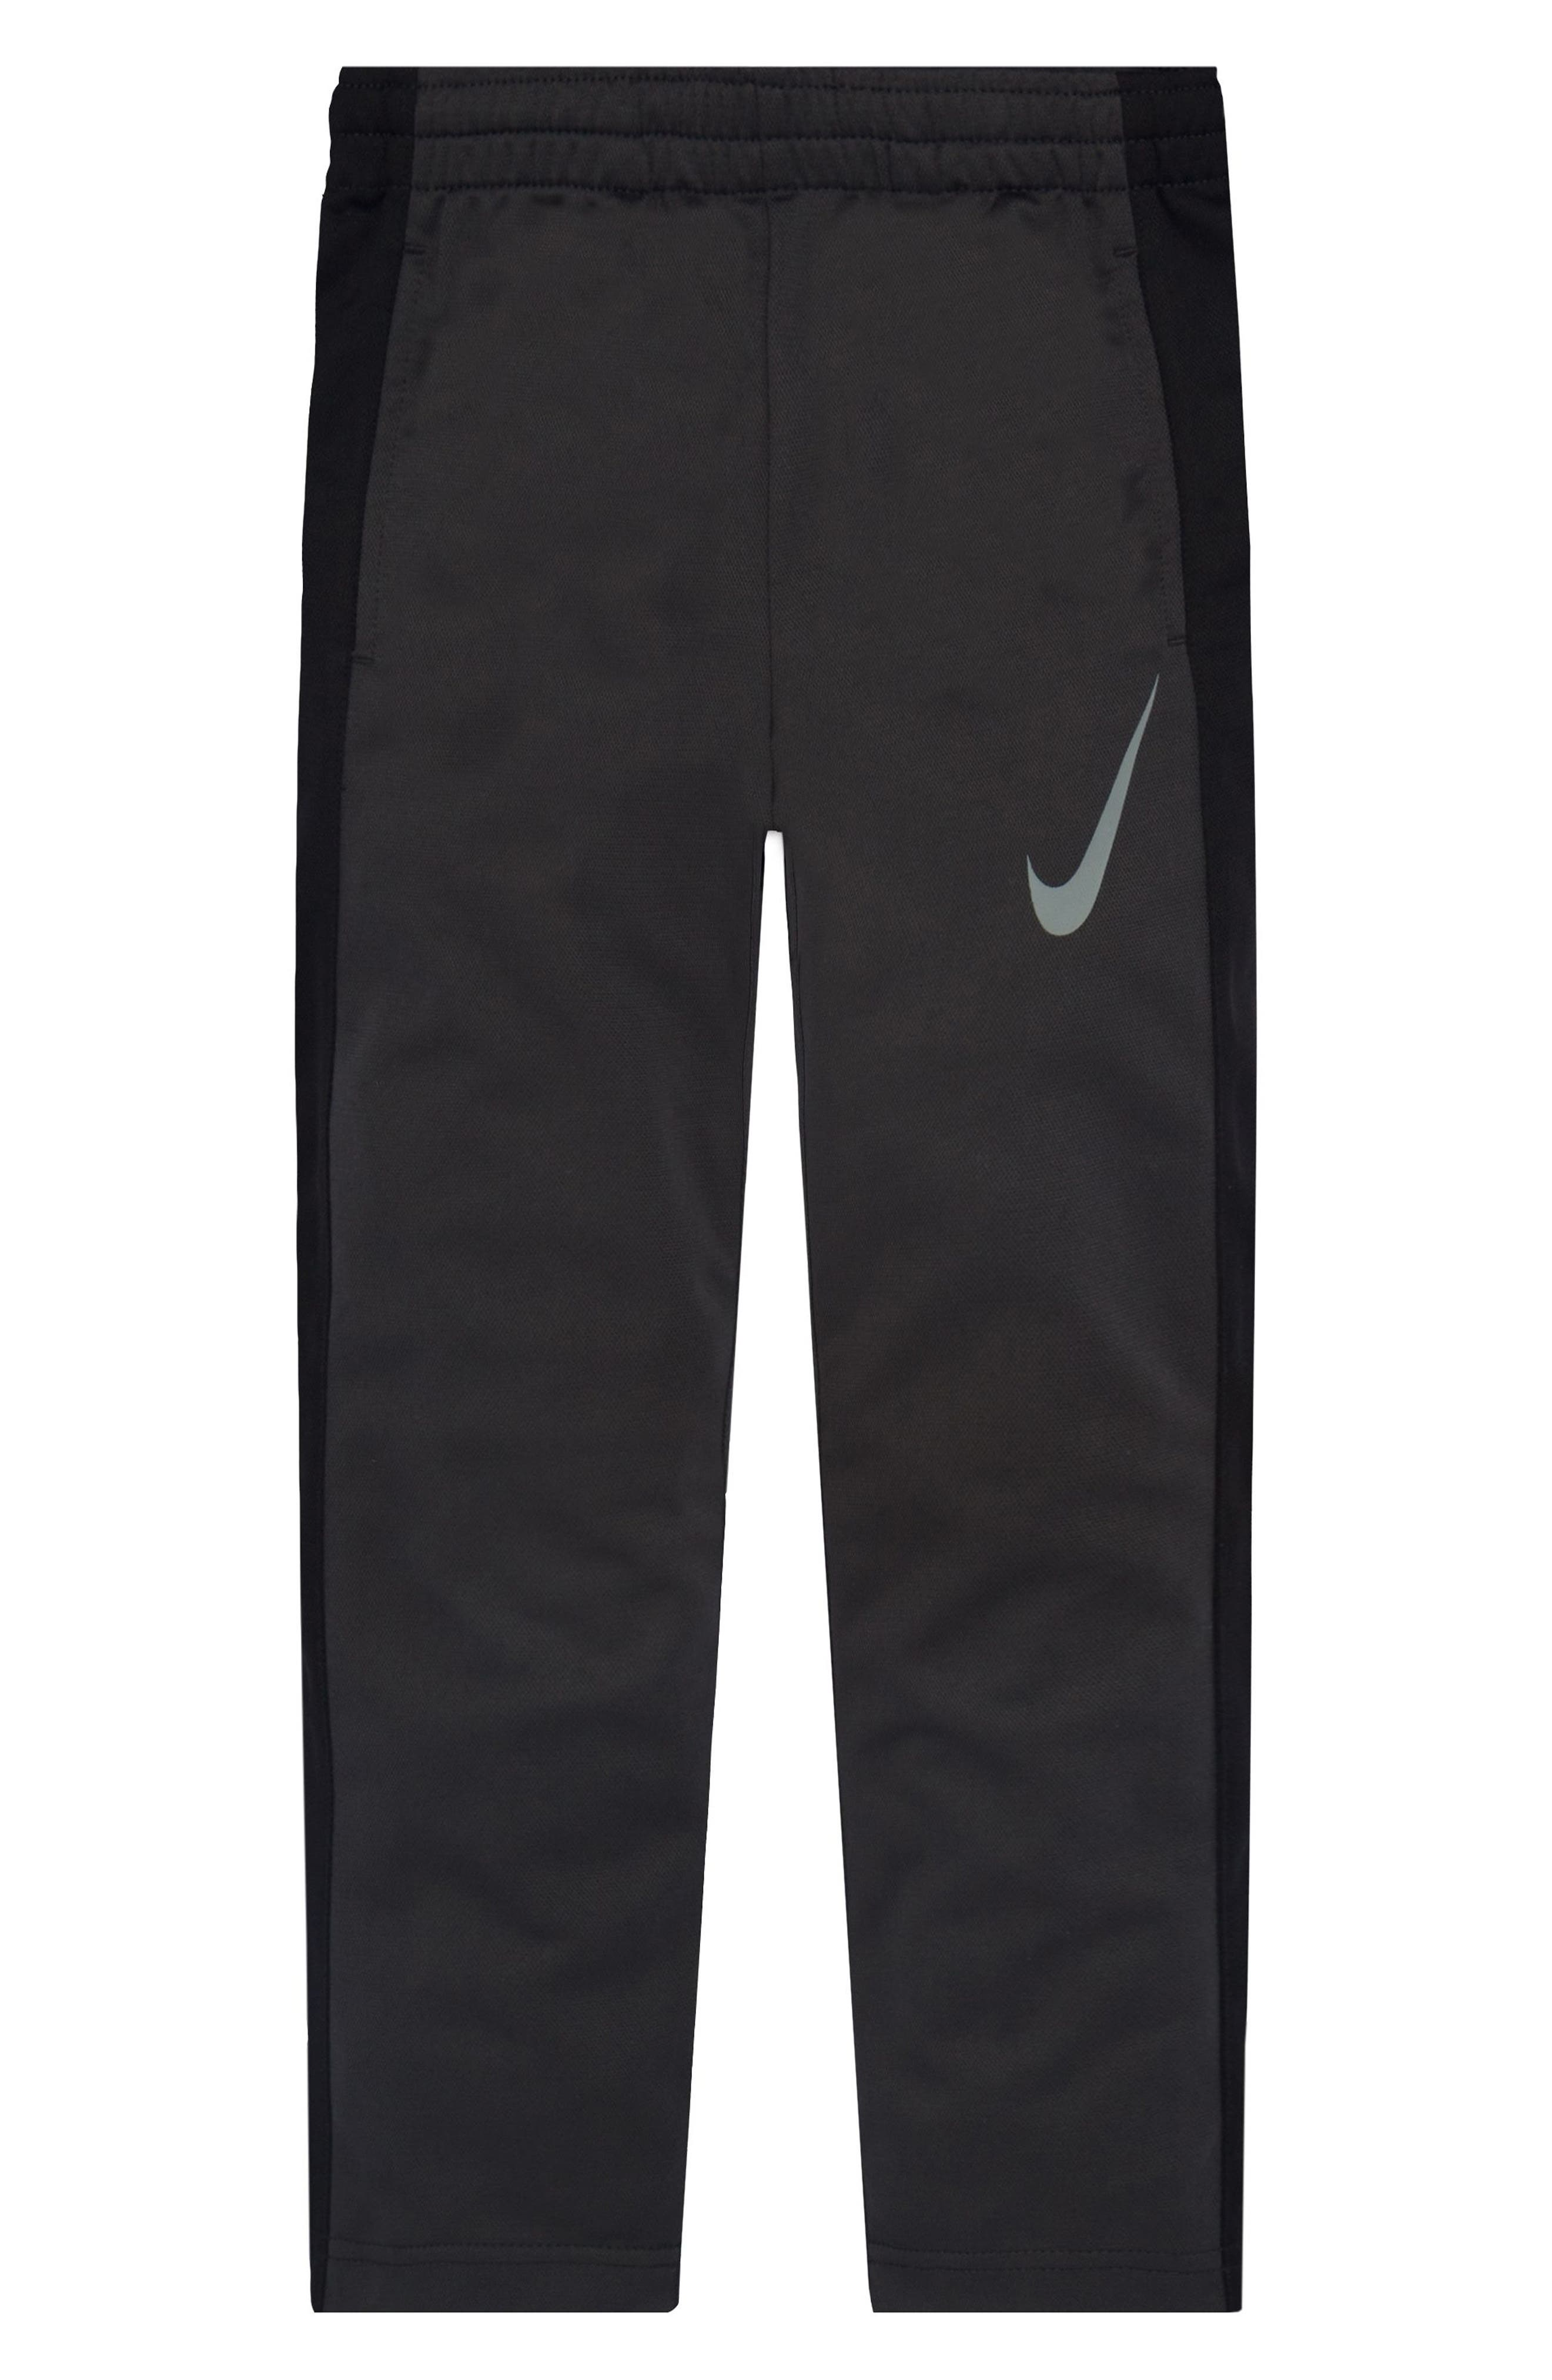 Alternate Image 1 Selected - Nike Performance Knit Track Pants (Toddler Boys & Little Boys)